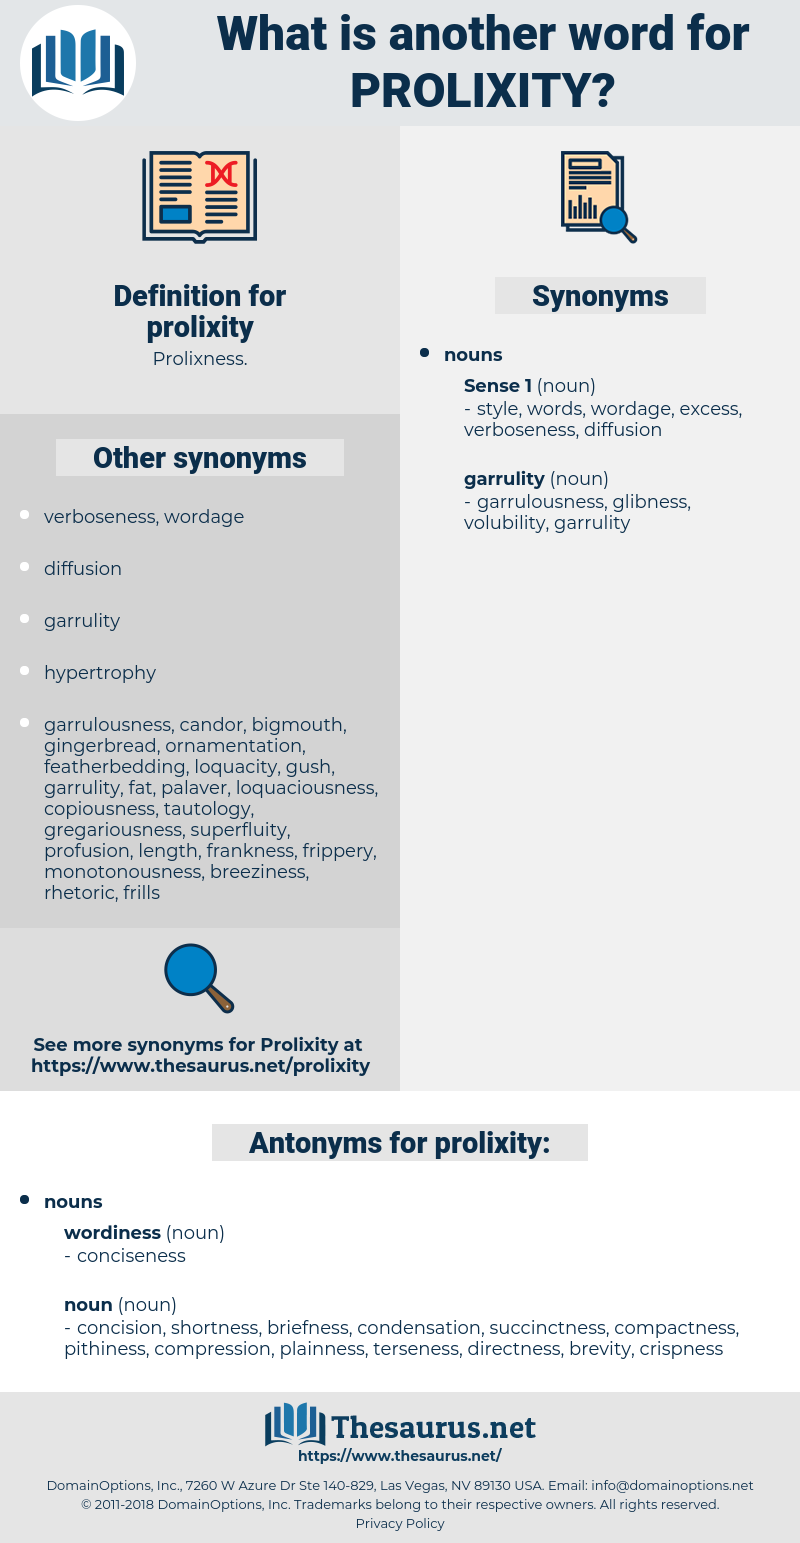 prolixity, synonym prolixity, another word for prolixity, words like prolixity, thesaurus prolixity